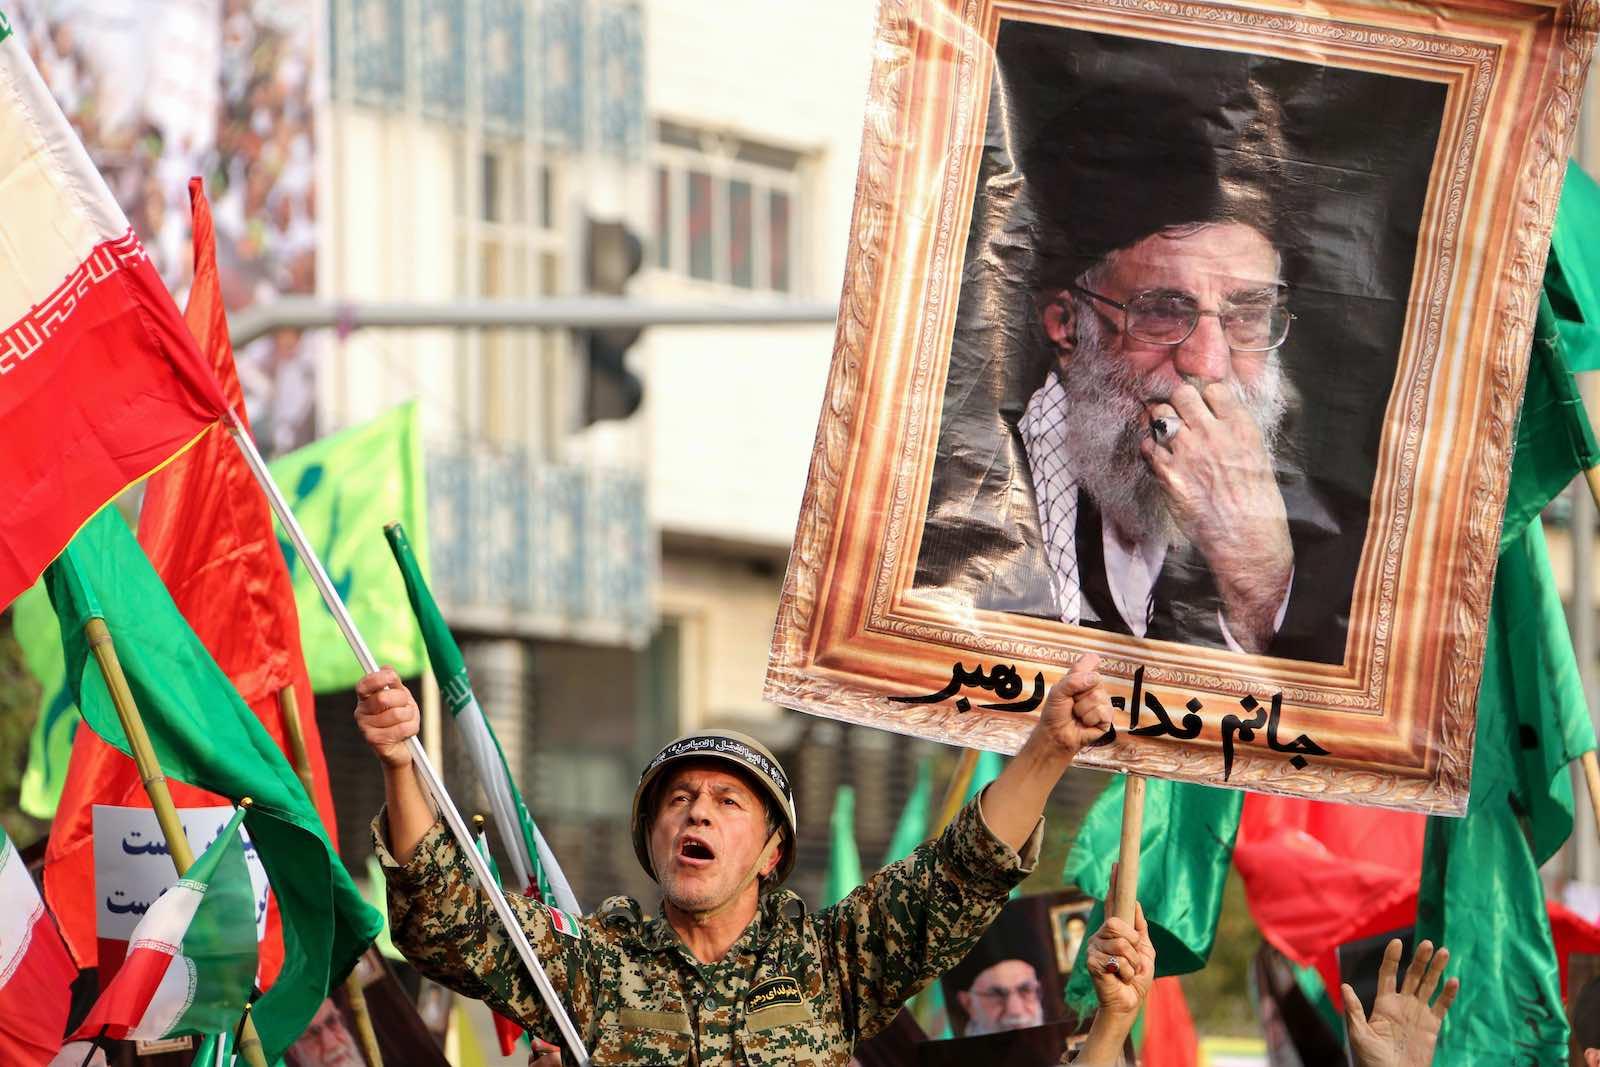 Iranian pro-government demonstrators on the streets in Tehran last month (Photo: Atta Kenare/AFP/Getty Images)